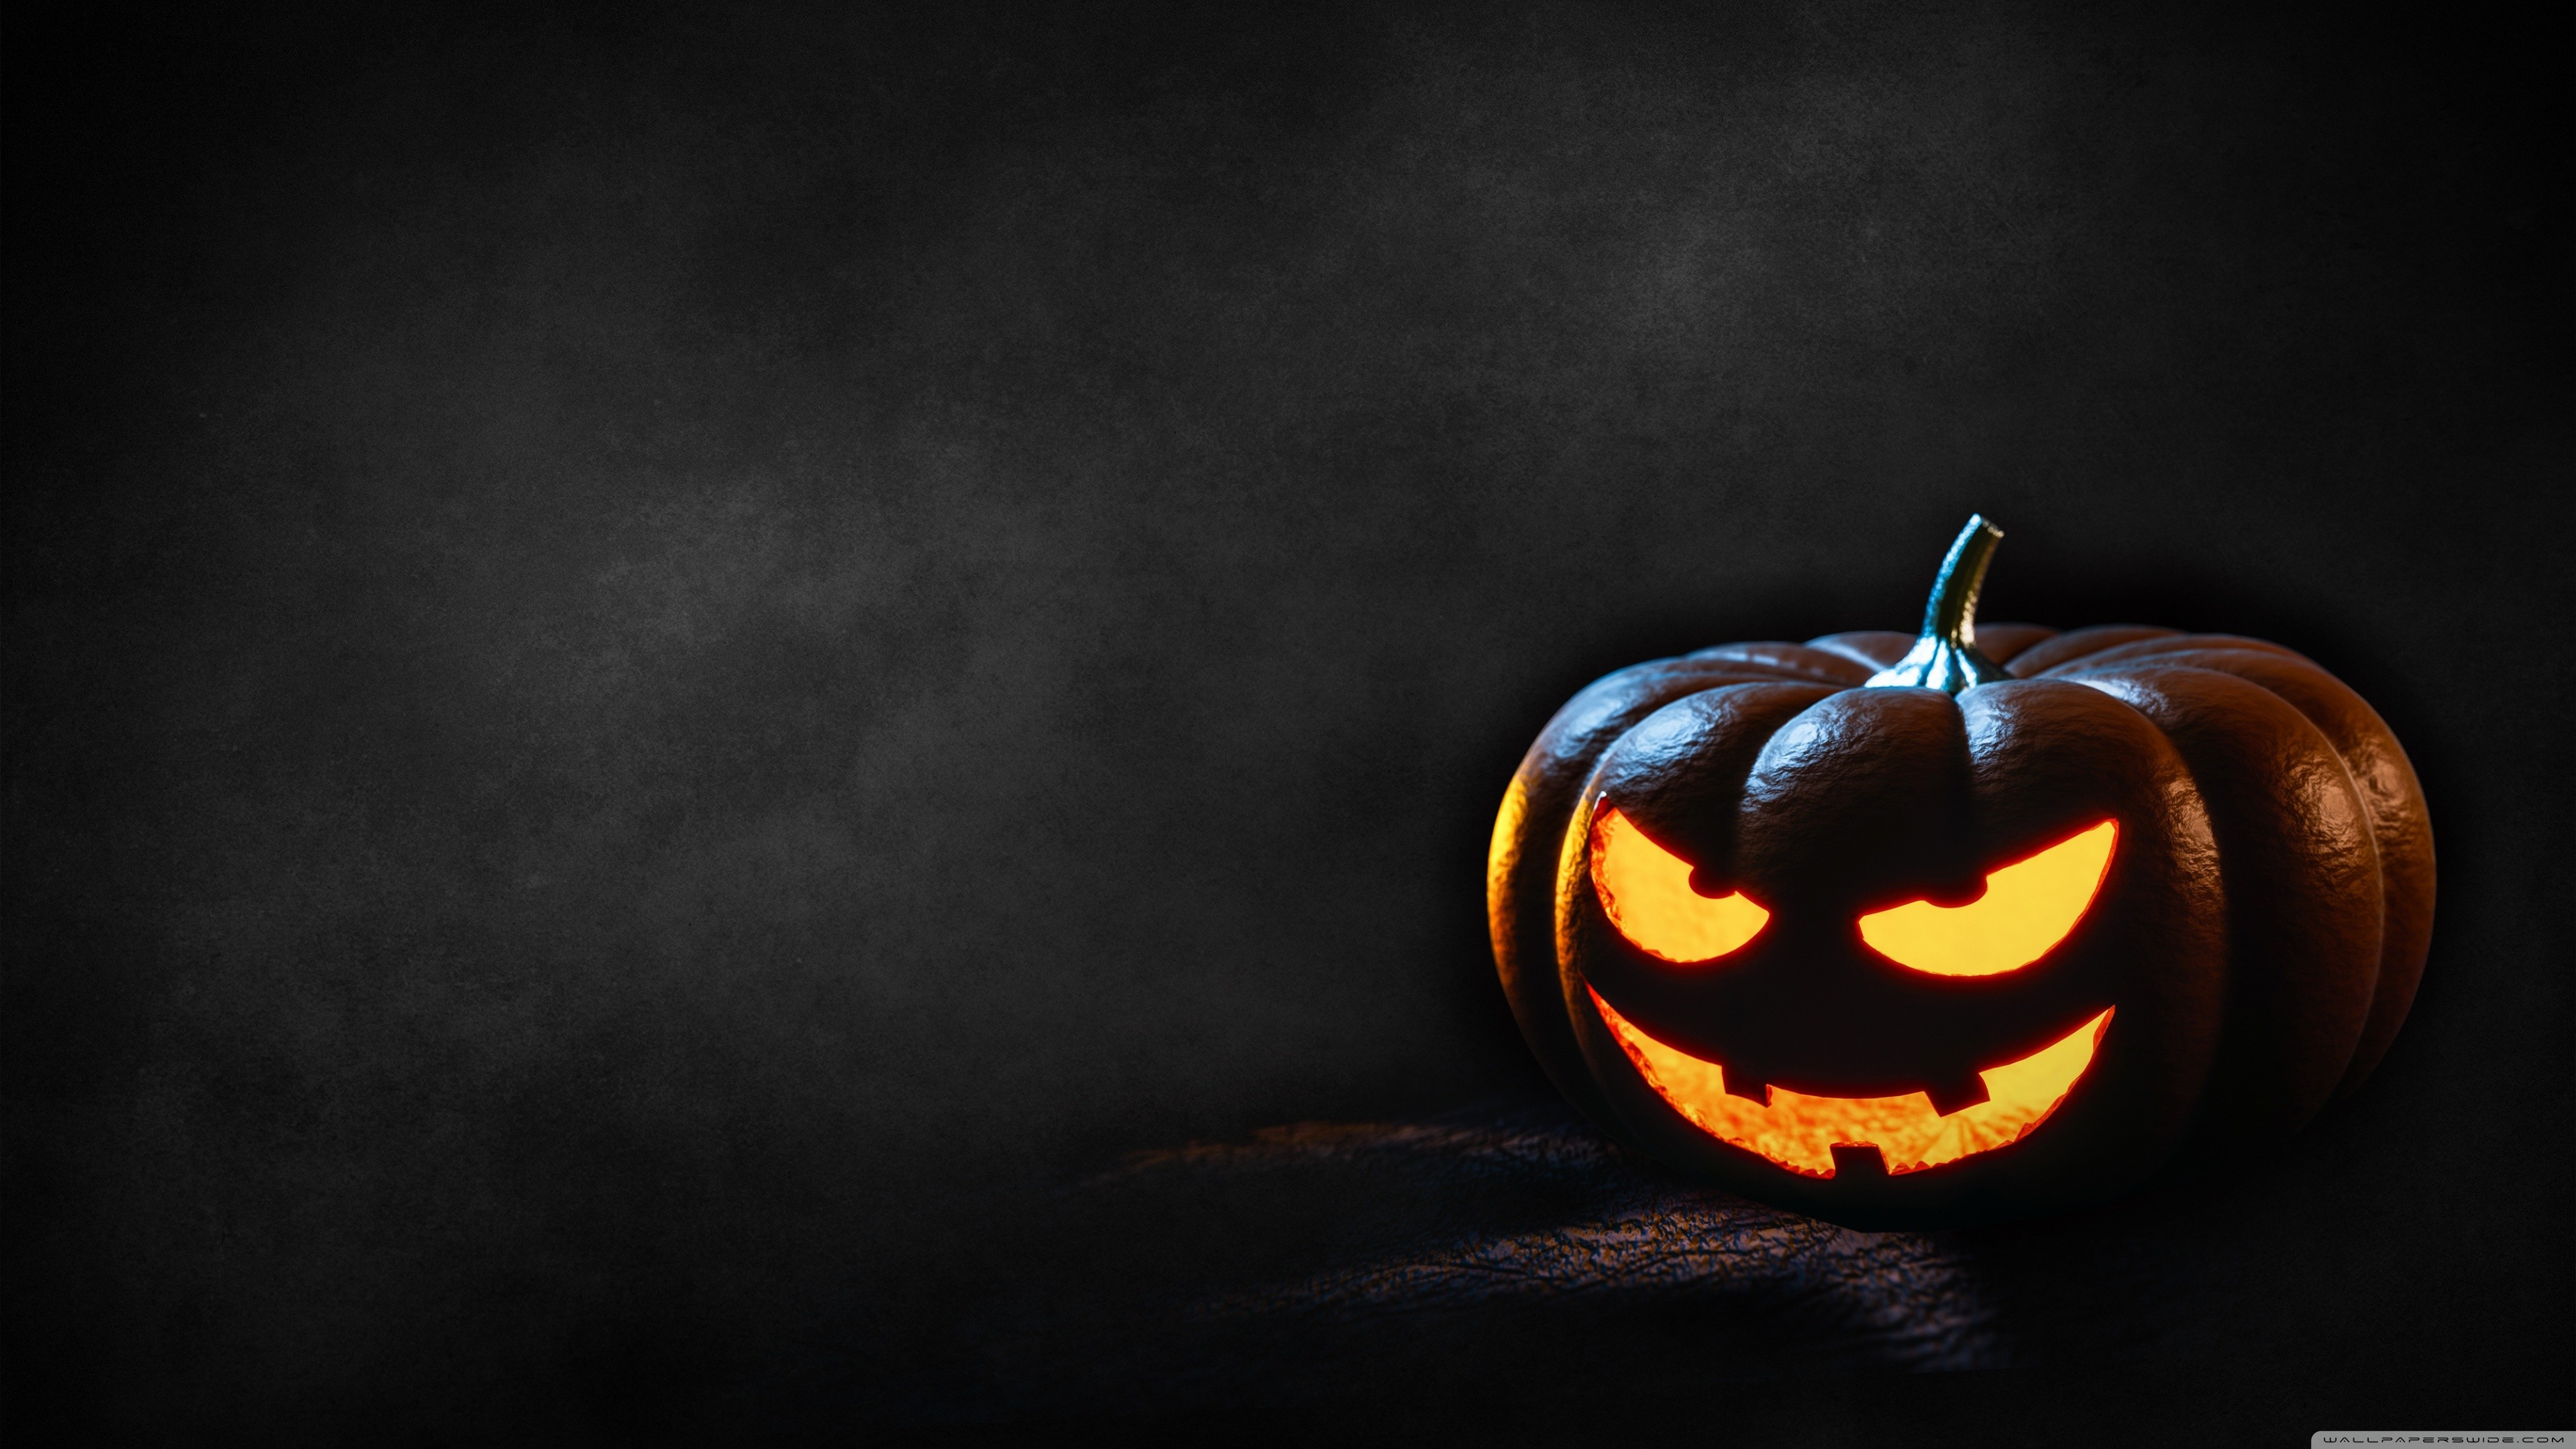 Halloween Wallpaper for PC 67 images 3840x2160